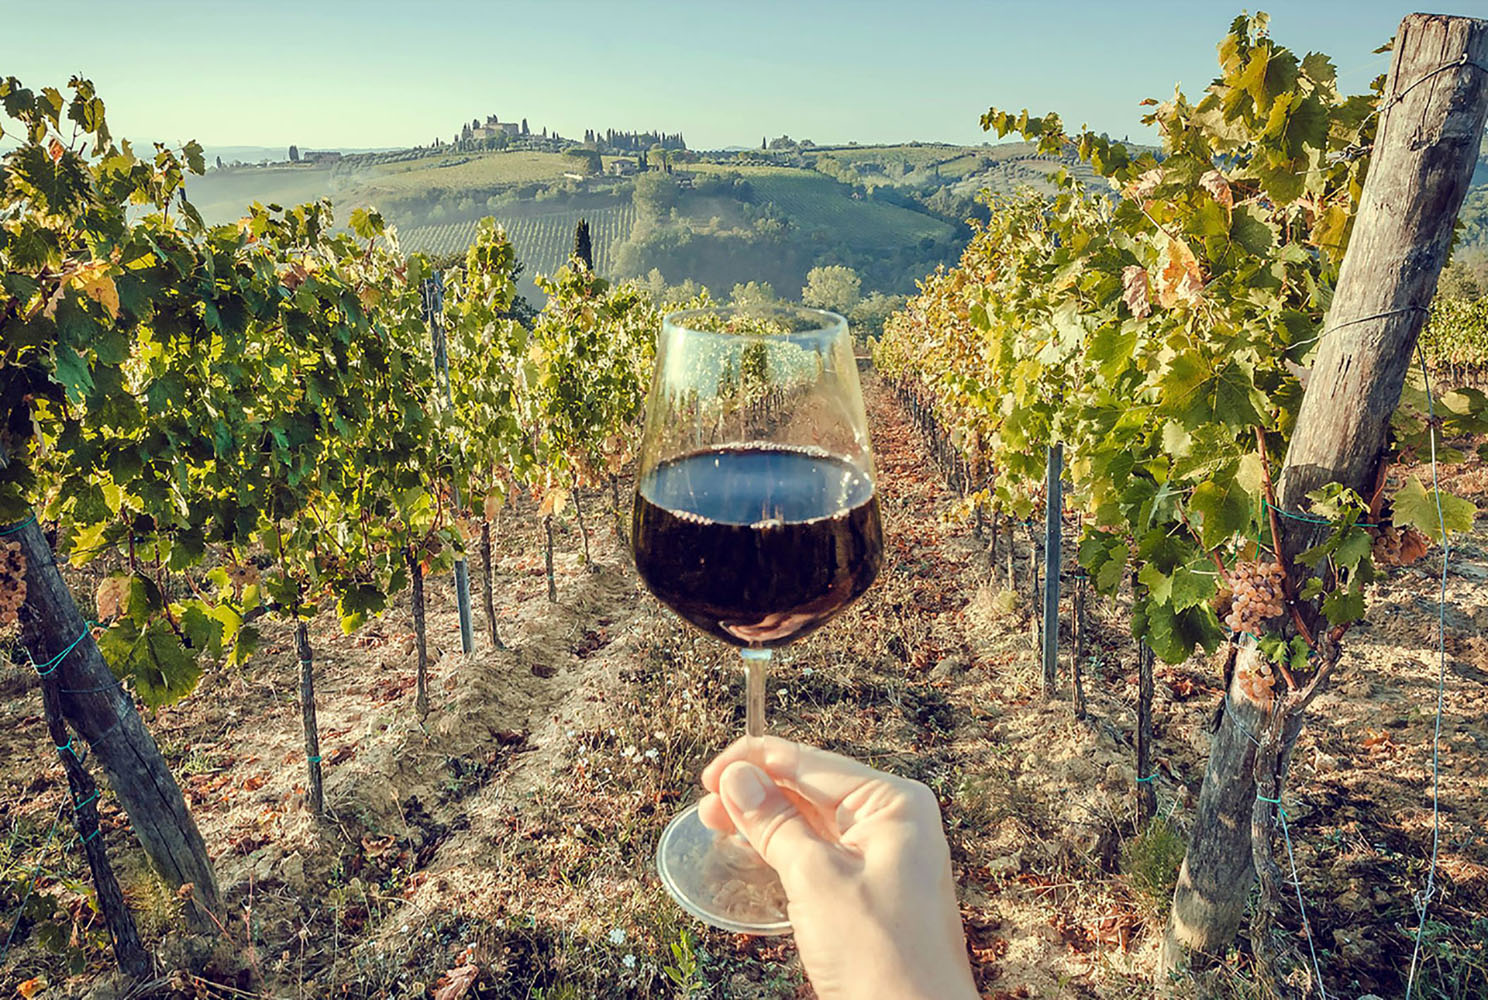 A tourist holds a glass of wine in hand in Tuscany, with green valley of grapes as the background